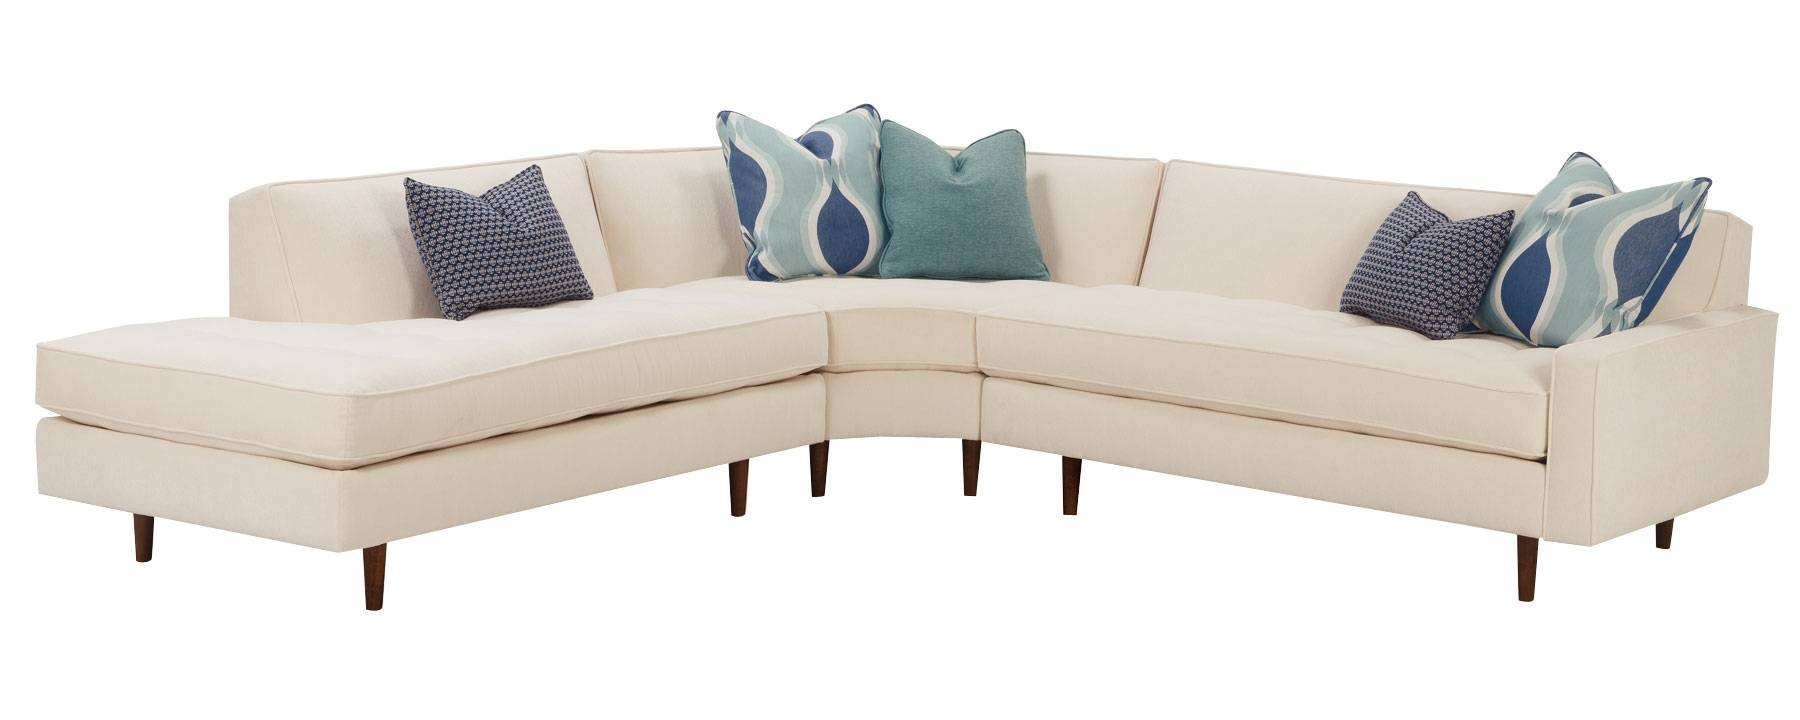 Mid-Century Modern Sectional With Tufted Seat And Tight Back for Tight Back Sectional Sofas (Image 5 of 15)